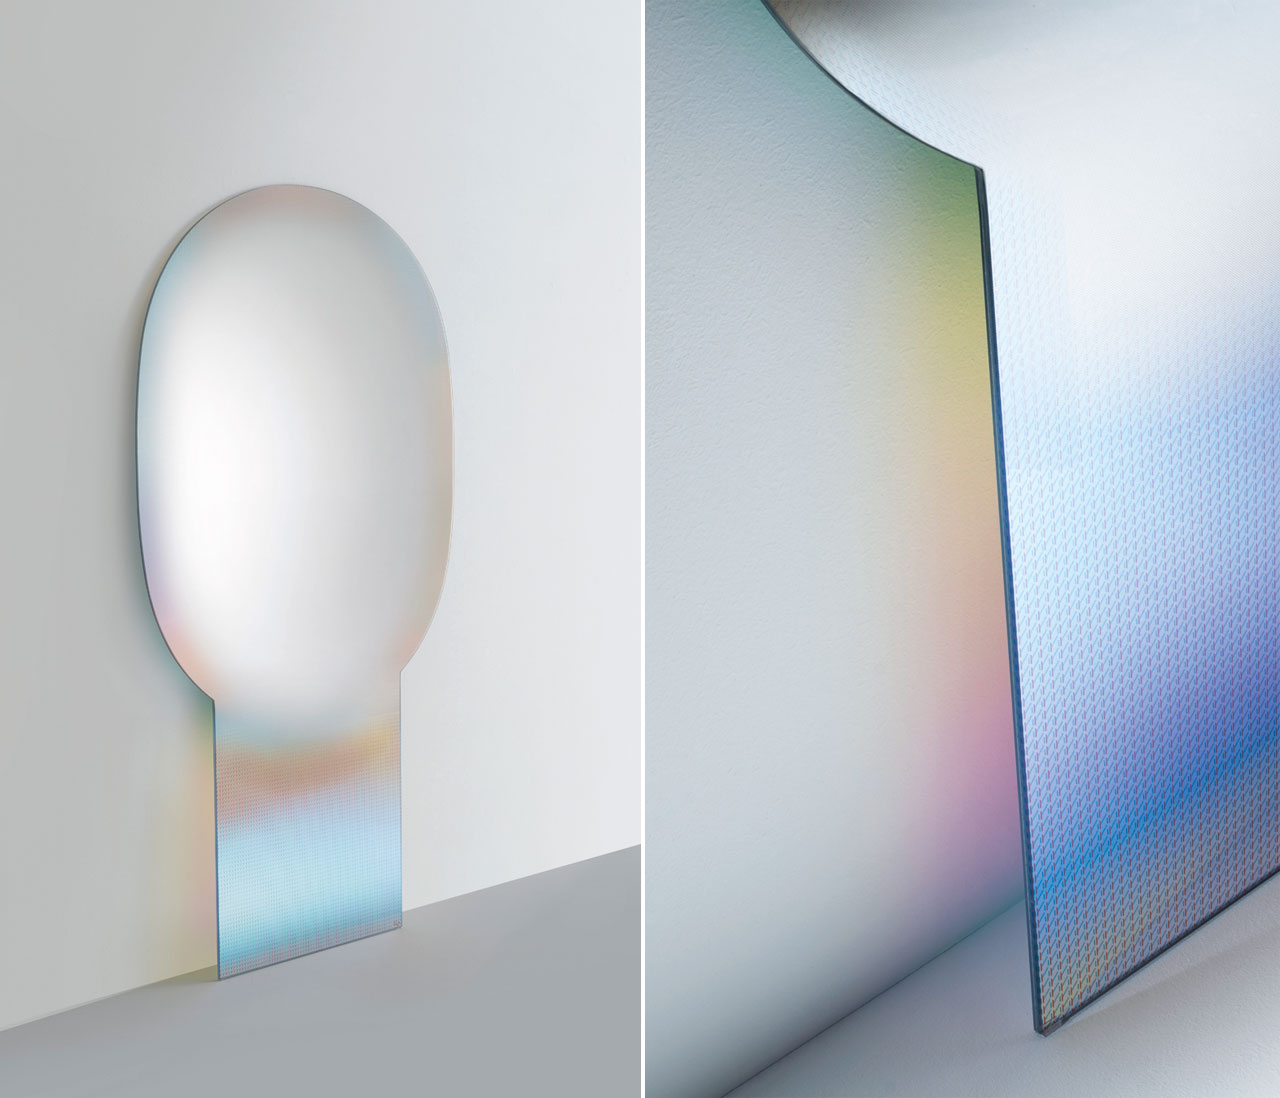 Mirror from theSHIMMER series byPatricia Urquiola for Glas Italia.